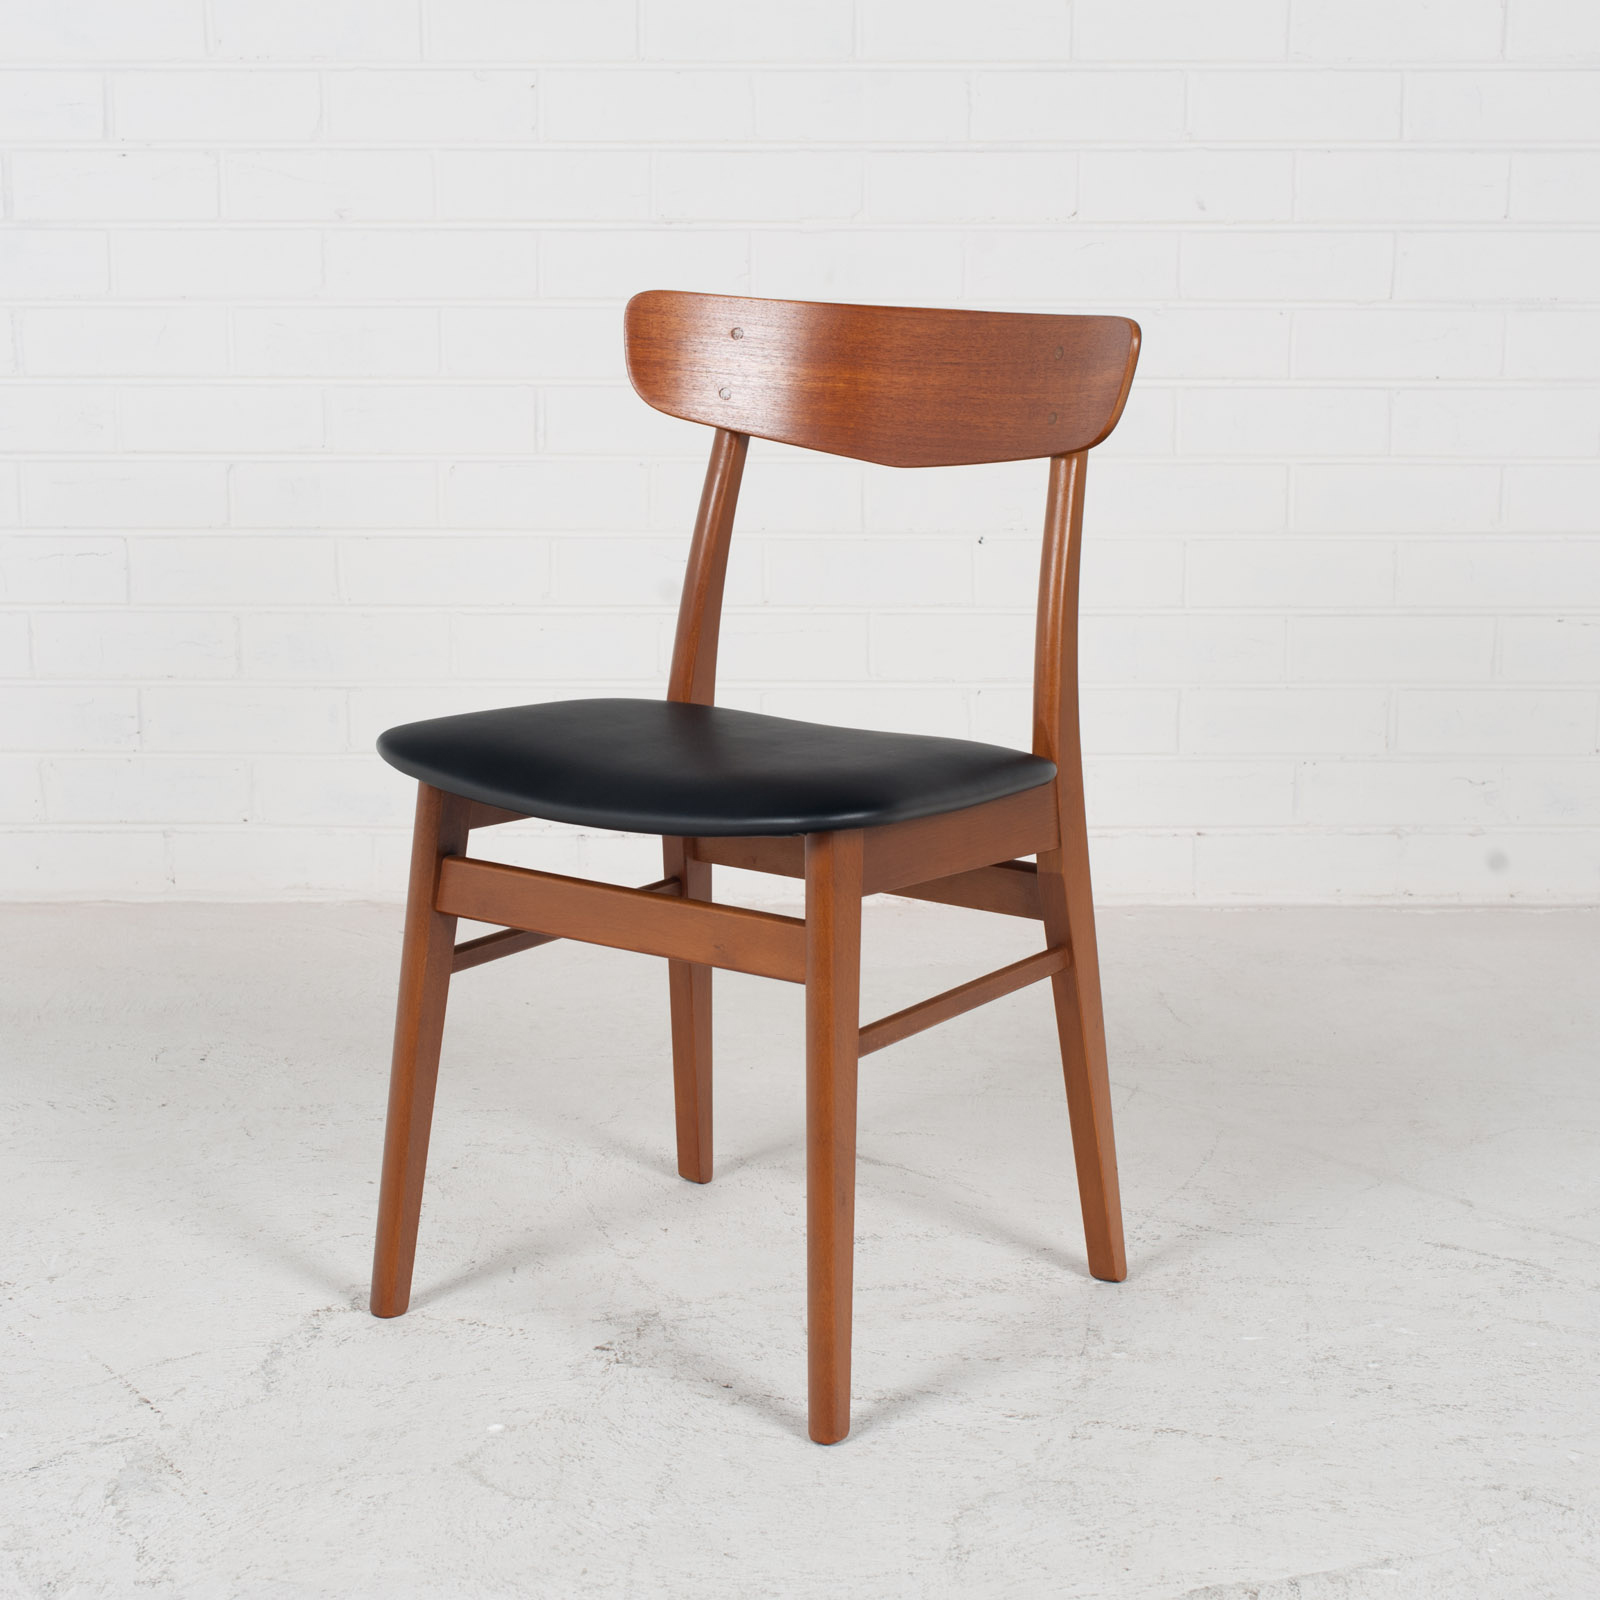 V Back Dining Chairs By Farstrup With Buttons In Teak And New Vinyl Upholstery 1960s Denmark 01